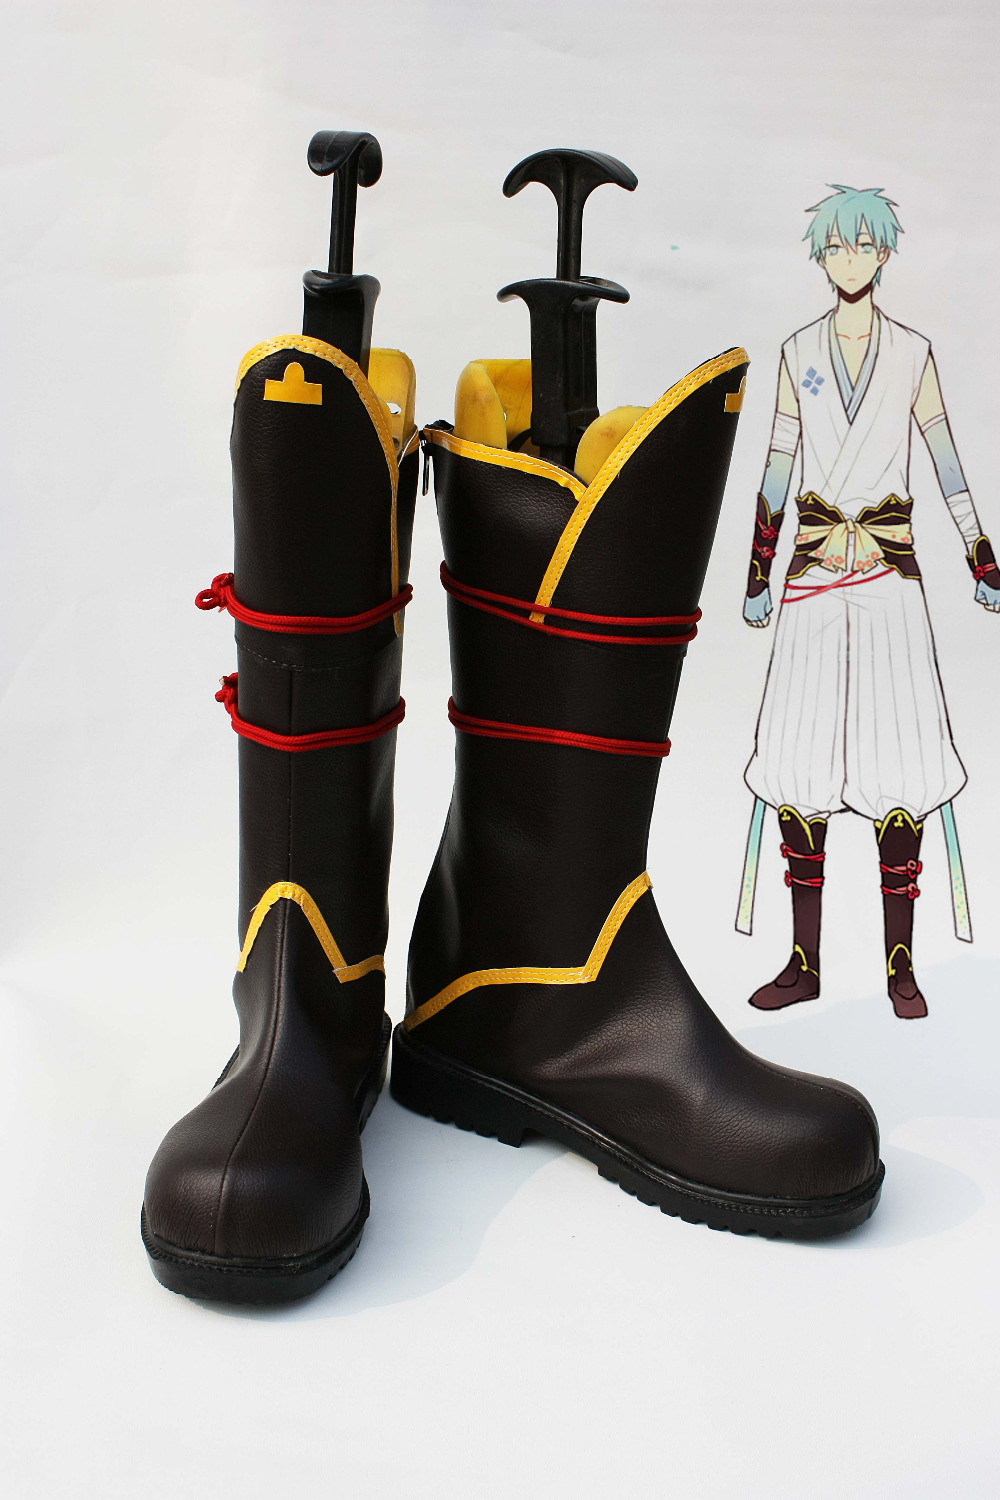 US $56.44 17% OFF|Anime Shoes Kuroko's Basket ball Kuroko Tetsuya Cosplay Boots in Shoes from Novelty & Special Use on AliExpress